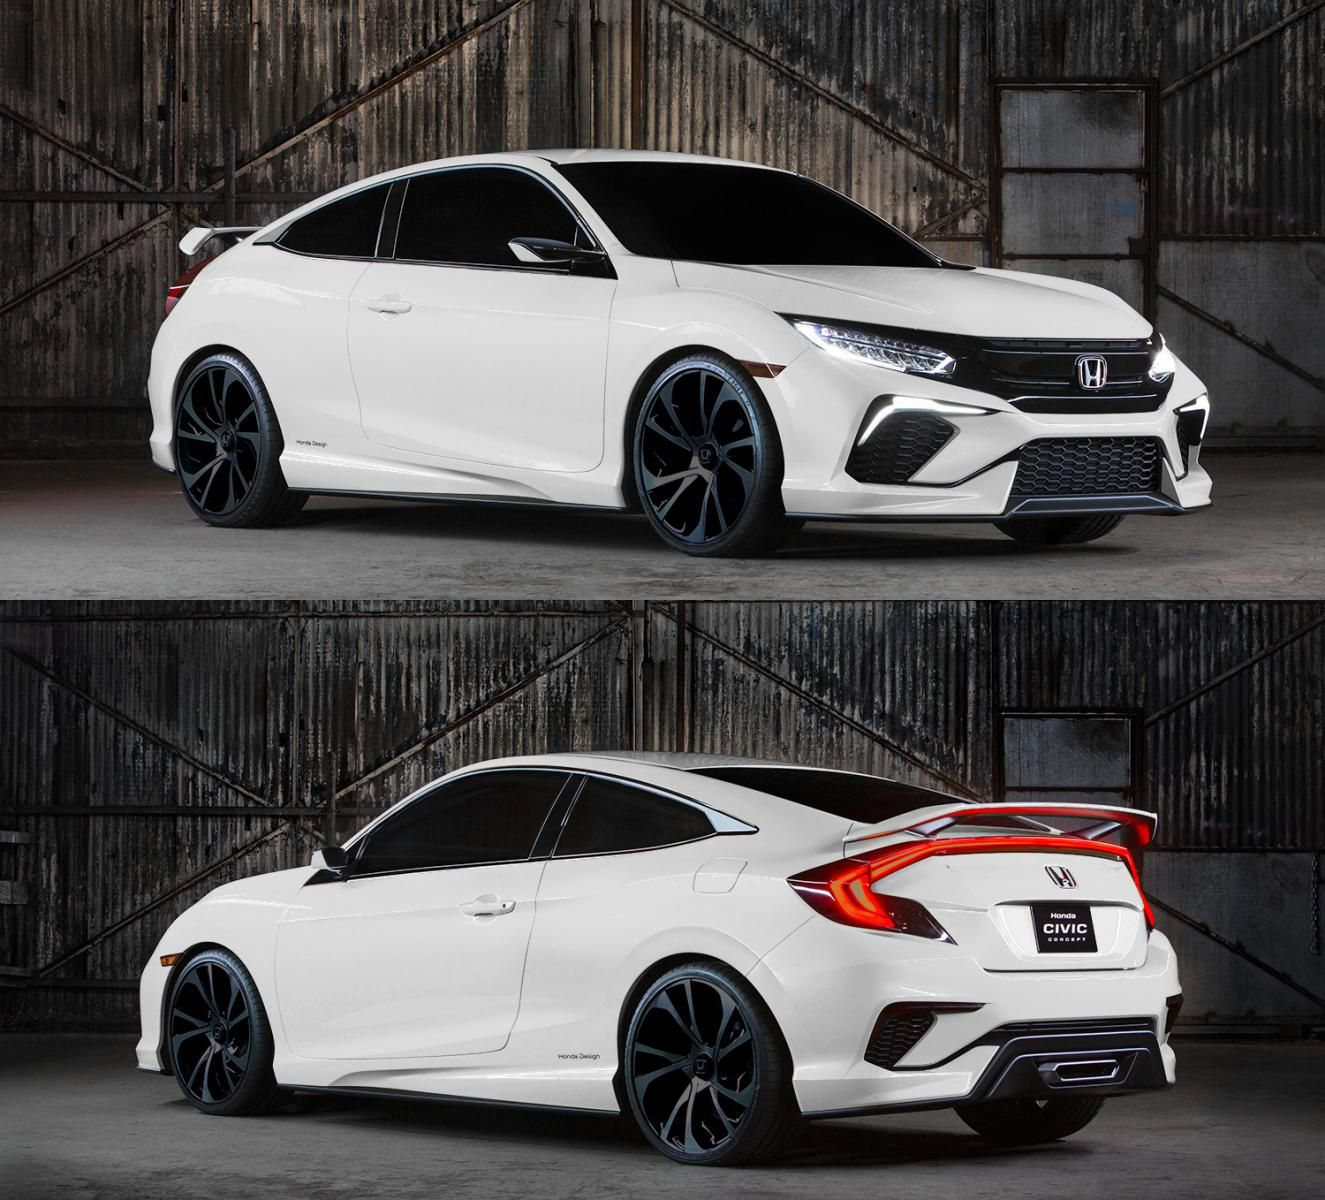 2016 civic si Google Search Honda civic si coupe